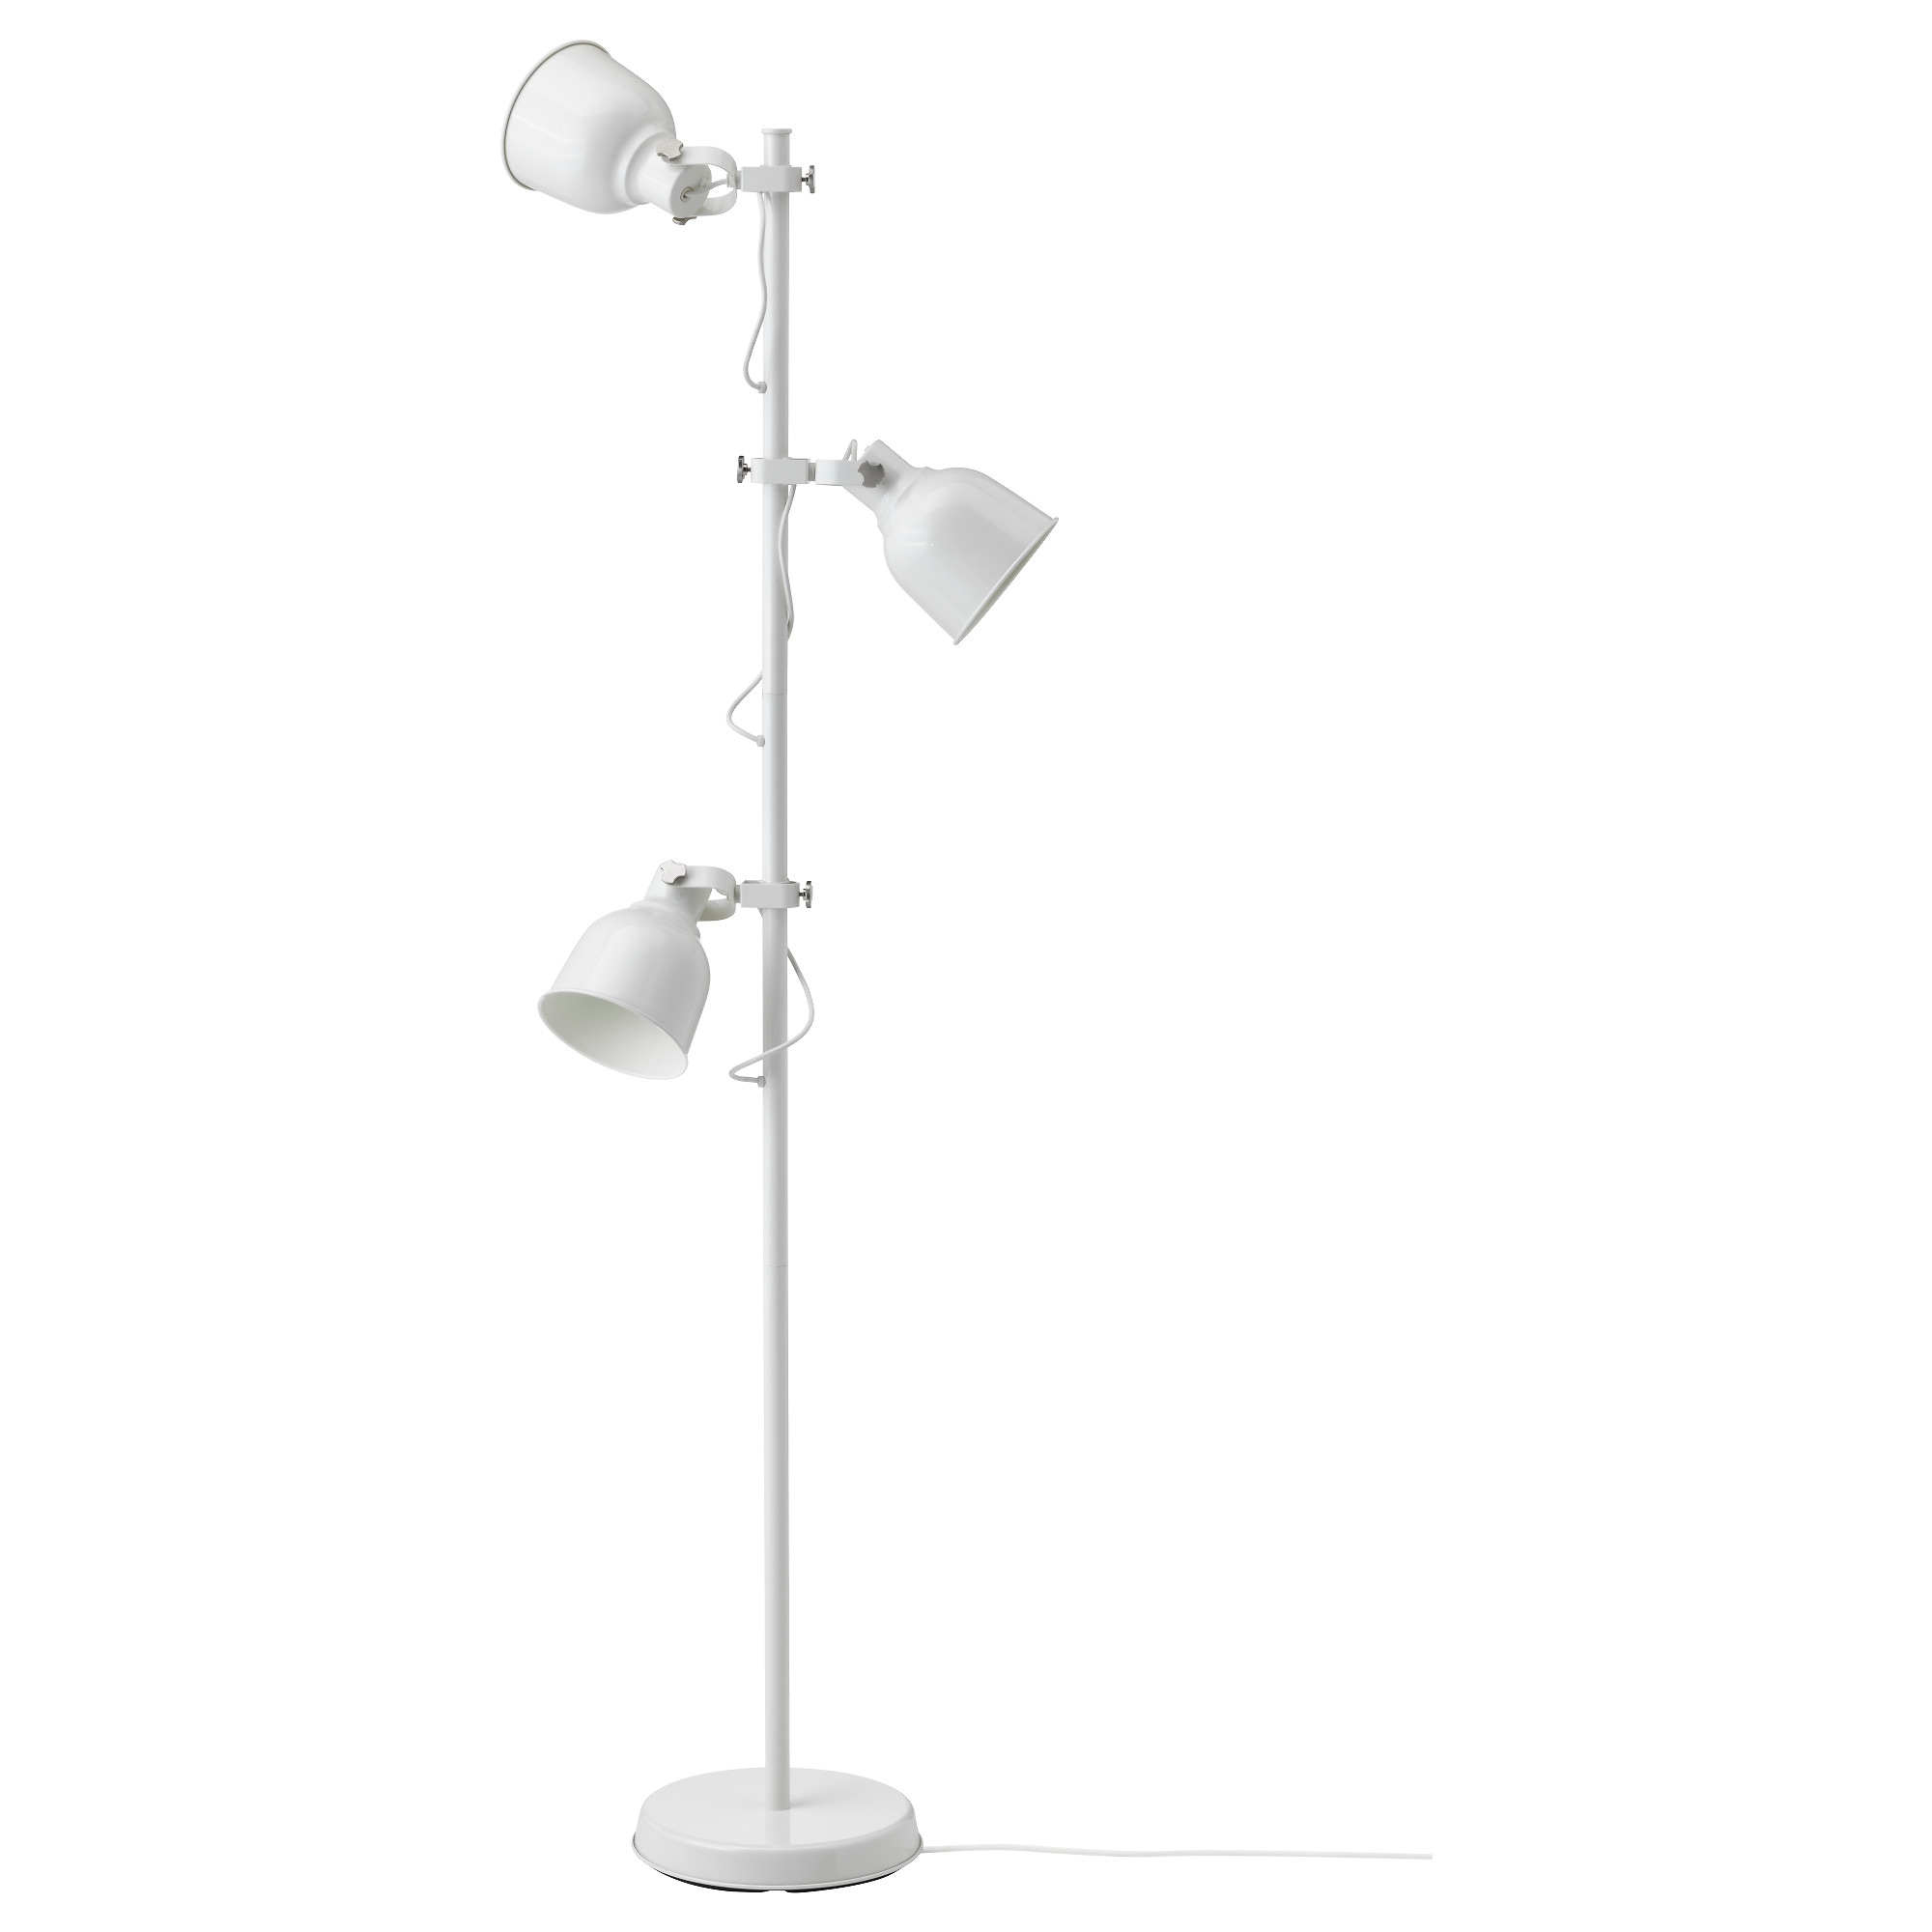 Floor Lamps - Modern & Contemporary Floor Lamps - IKEA